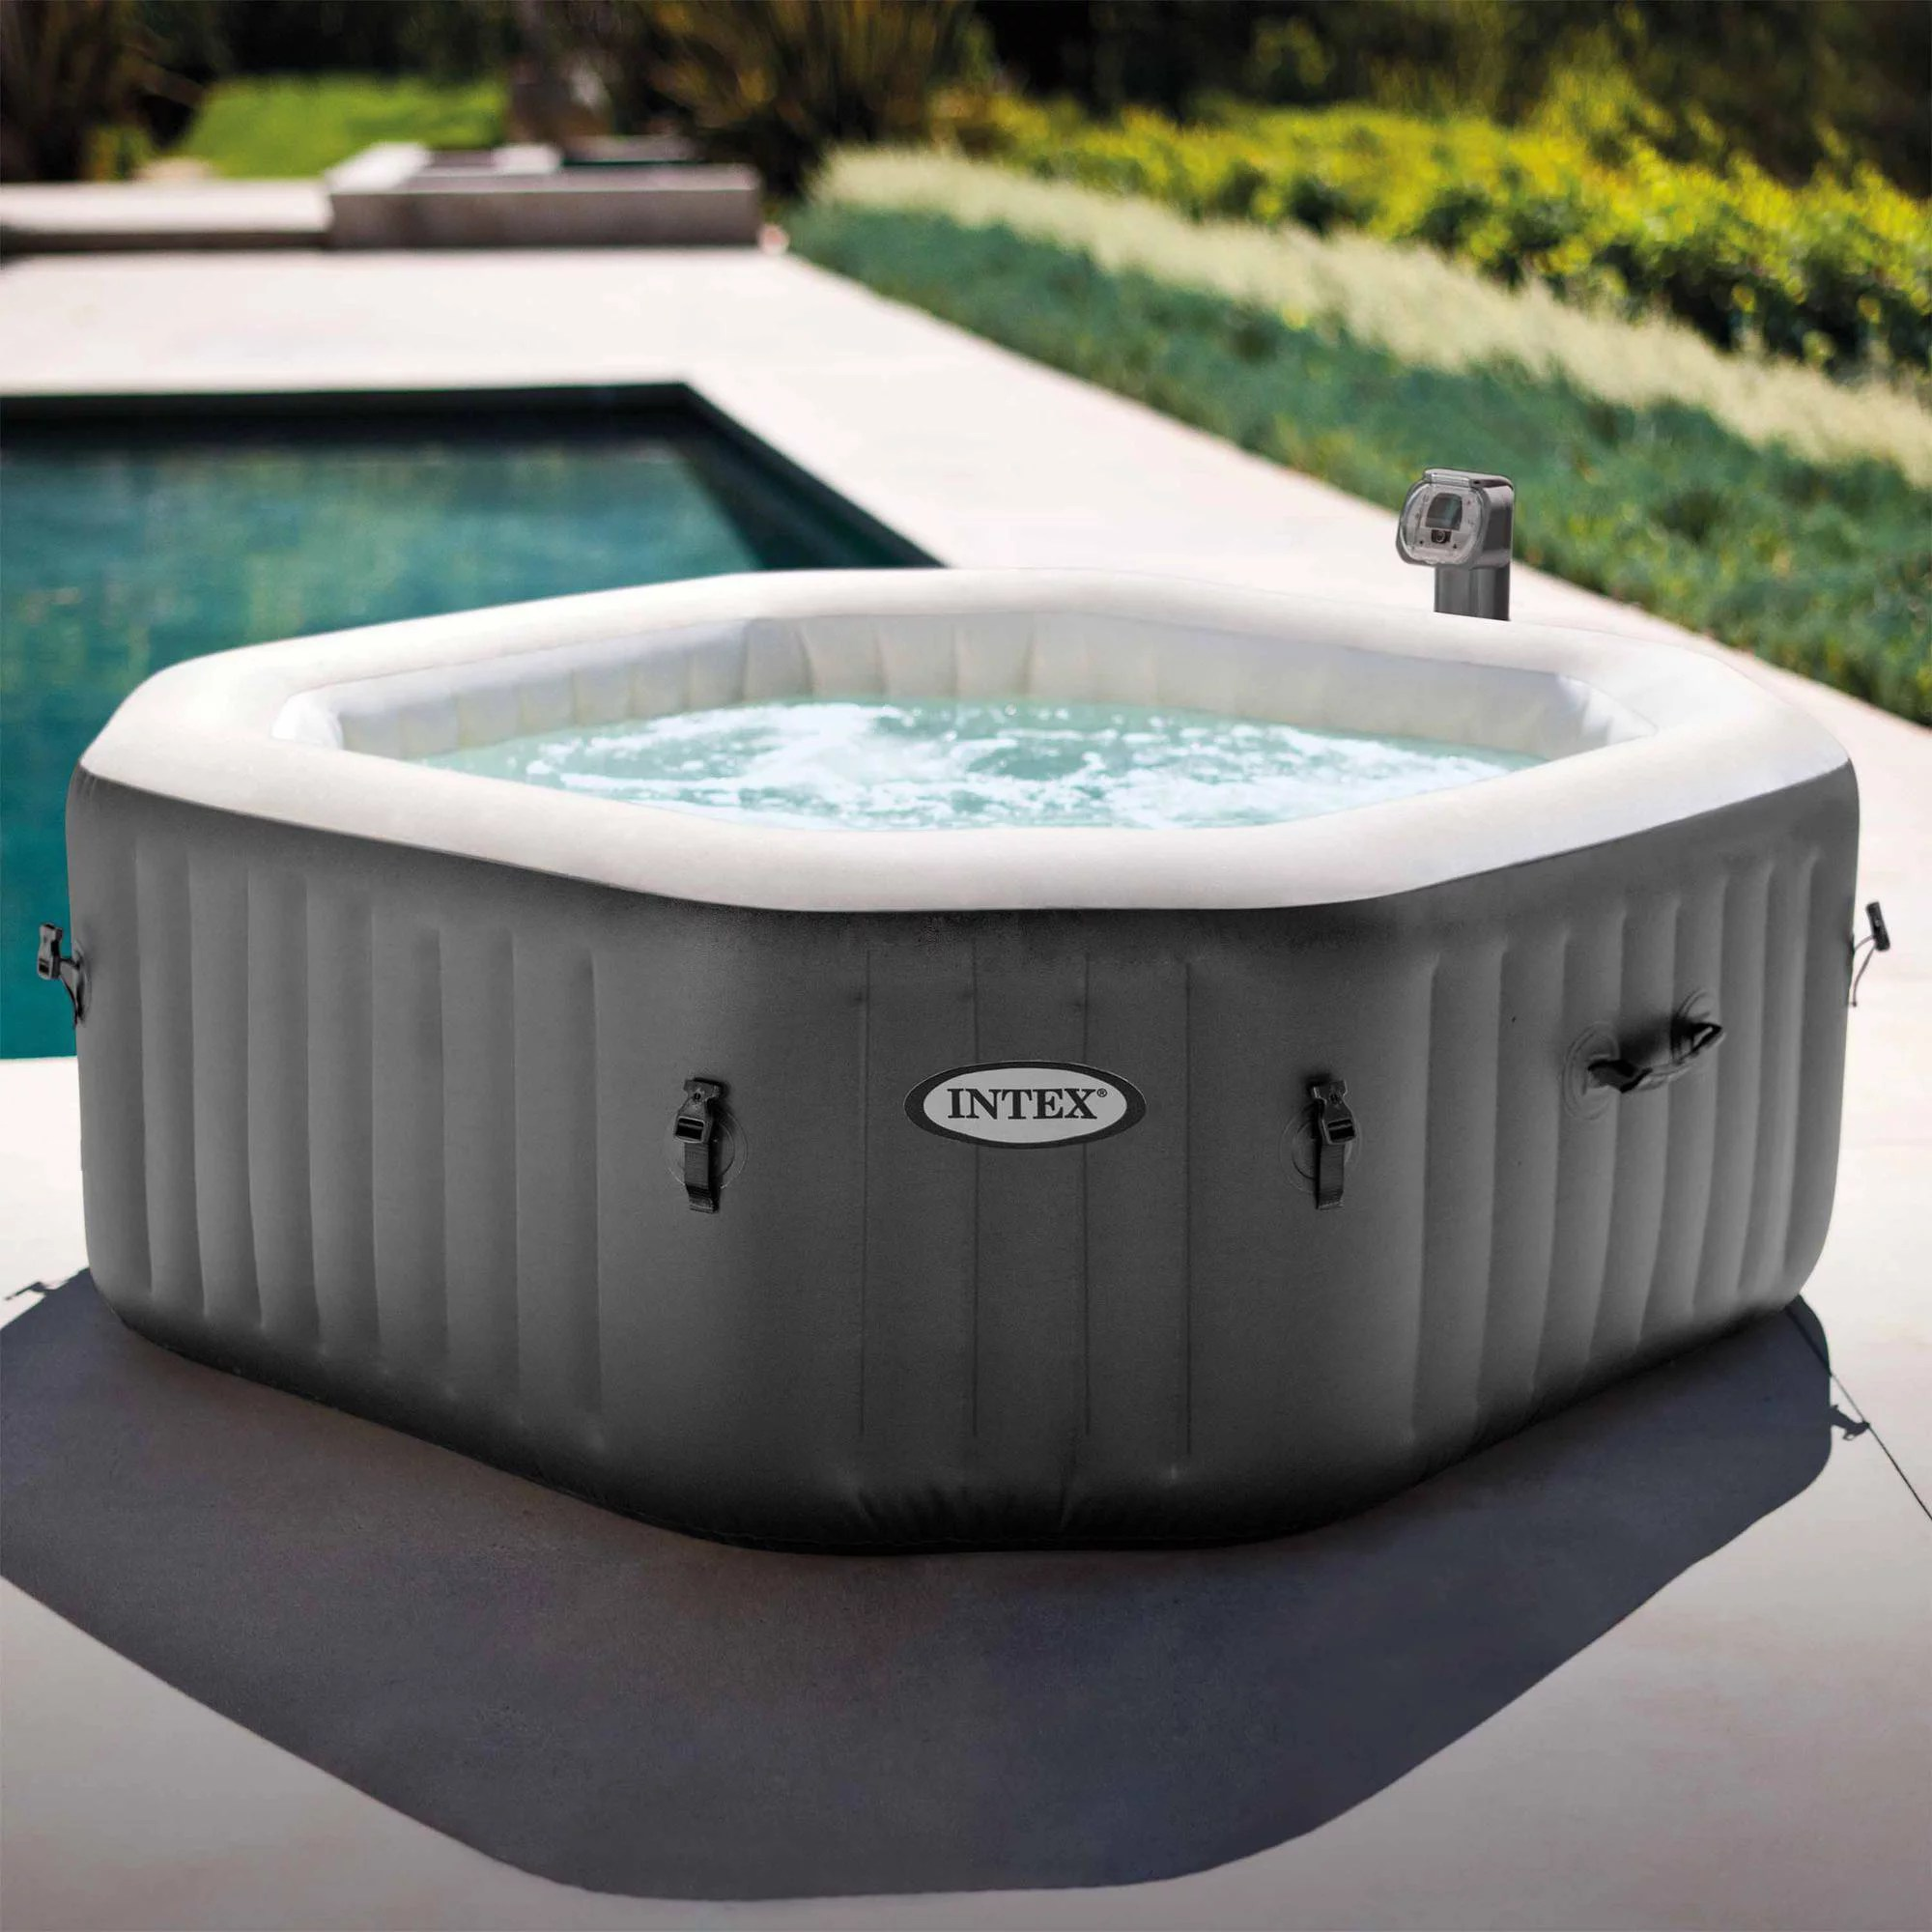 Jacuzzi Pool Manual Intex 120 Bubble Jets 4 Person Octagonal Portable Inflatable Hot Tub Spa